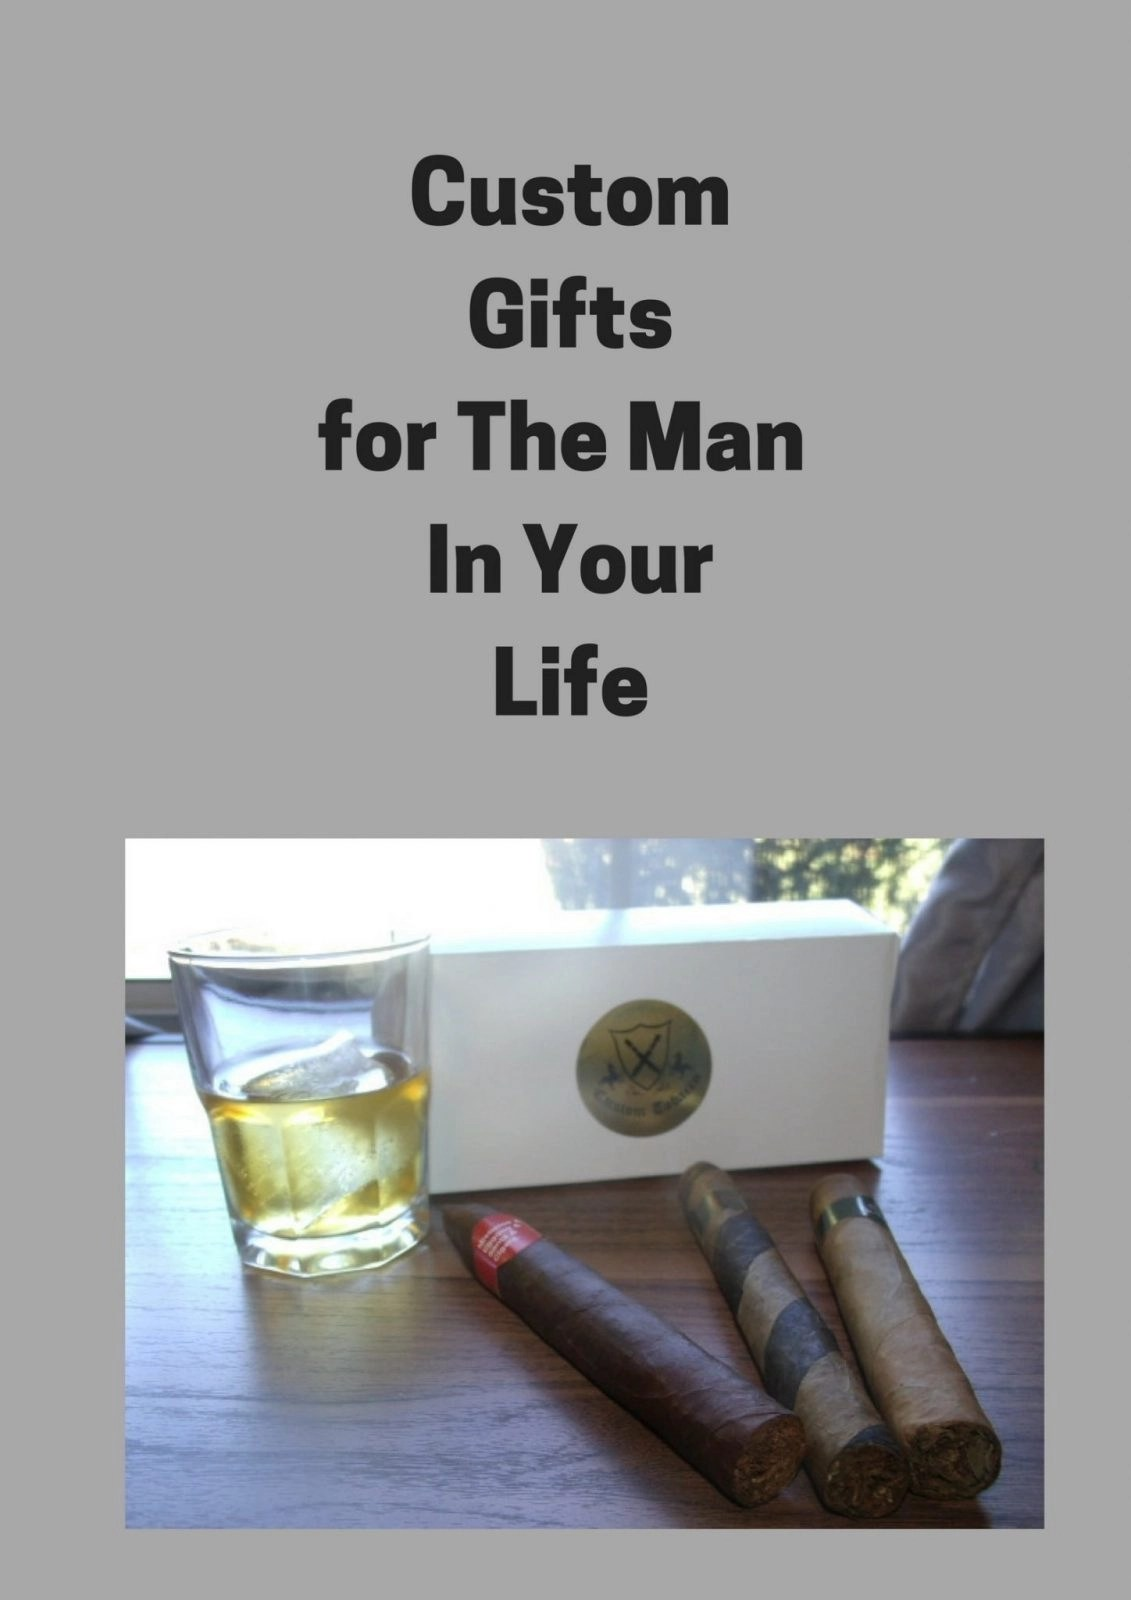 Custom Gifts for The Man In Your Life